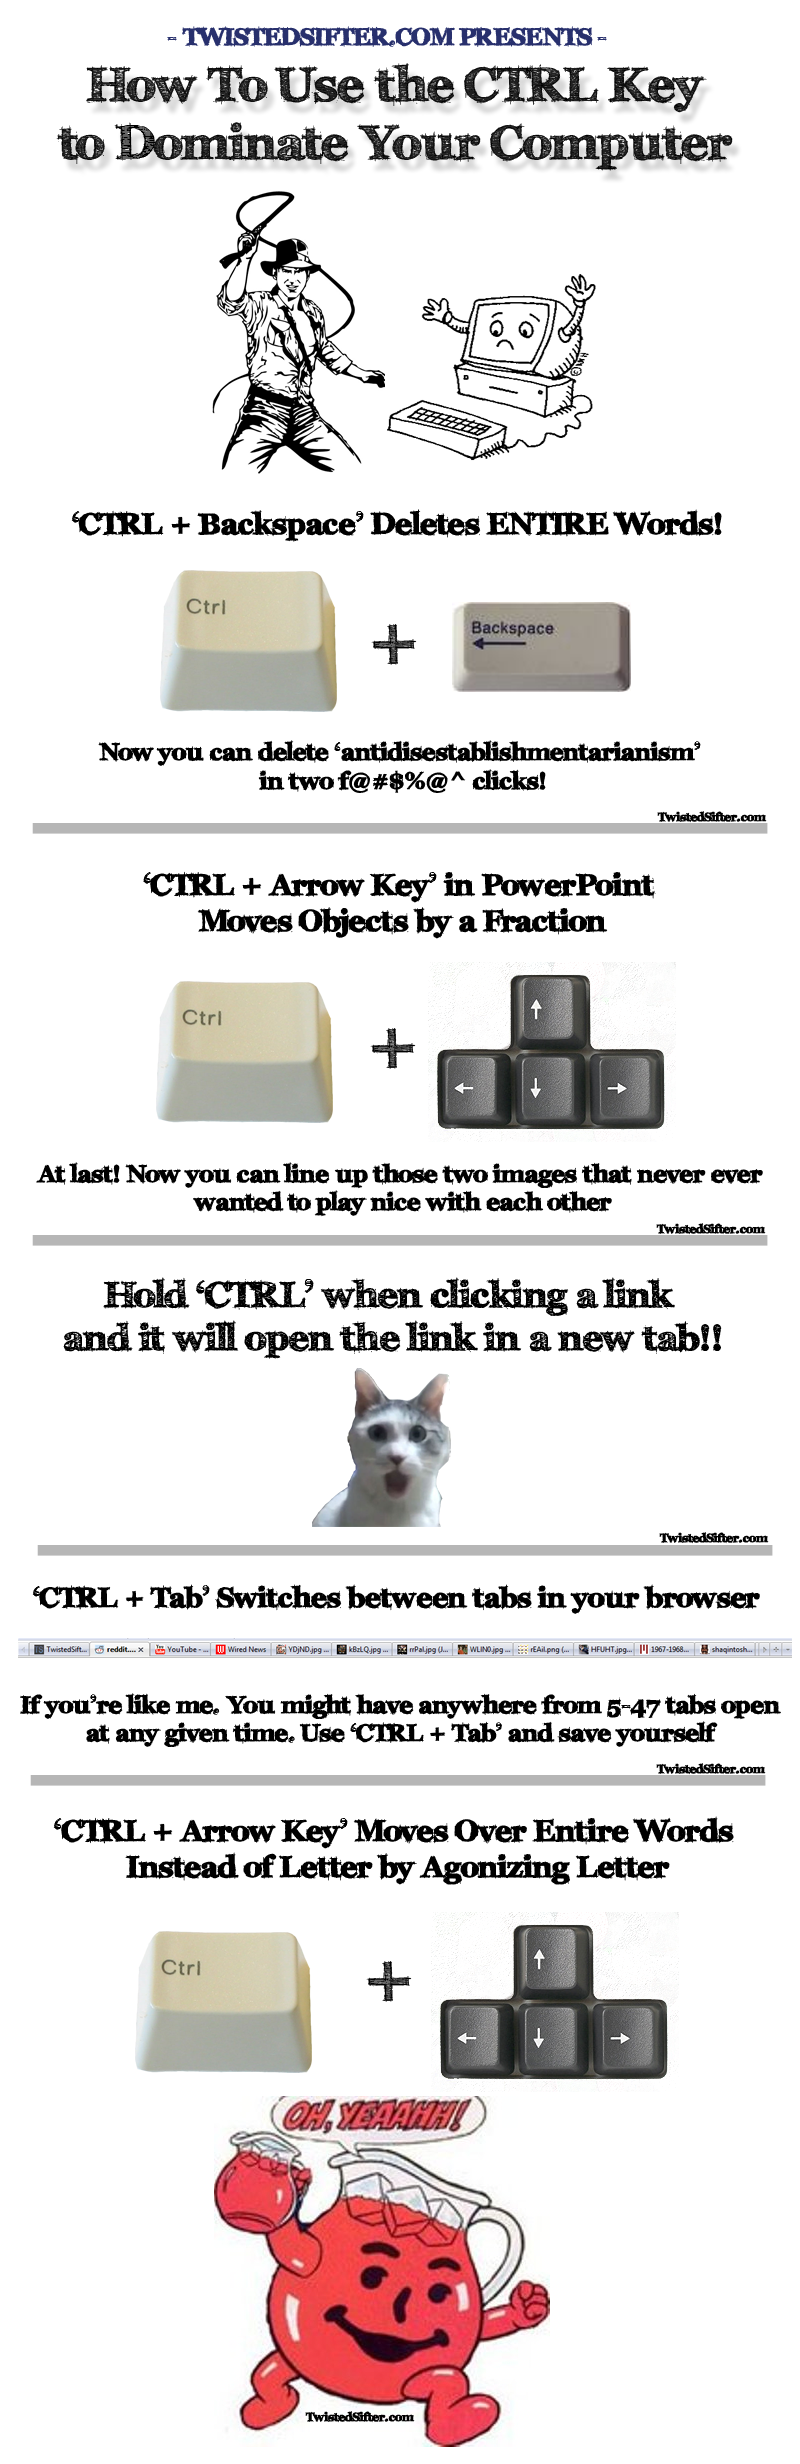 ctrl key shortcuts infographic HOW TO Use the CTRL Key to Dominate Your Computer